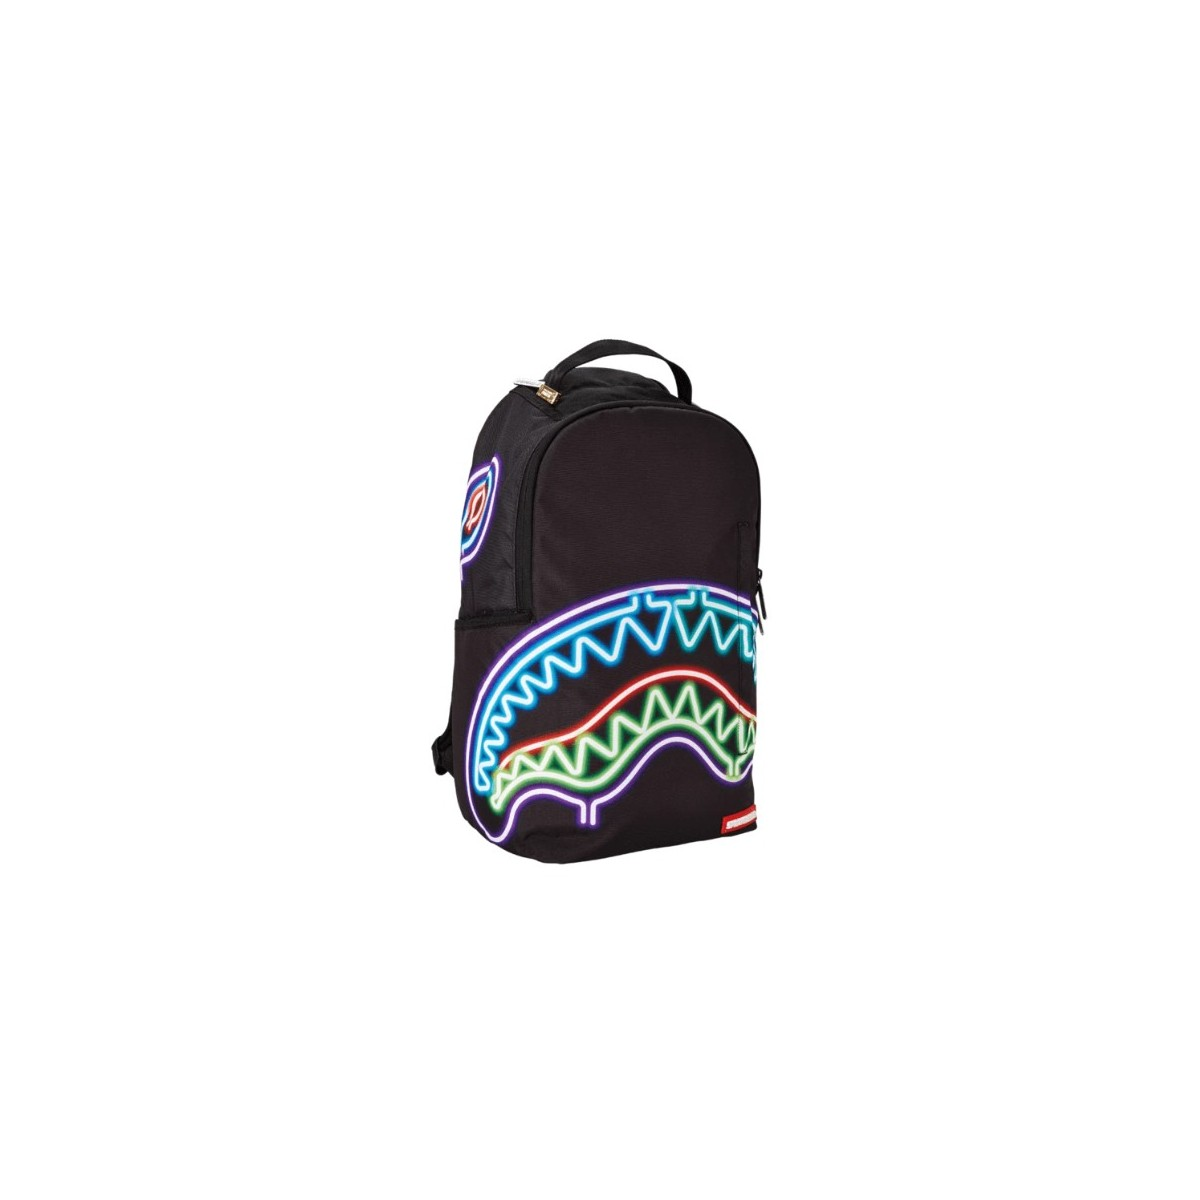 Zaino - Neon shark backpack